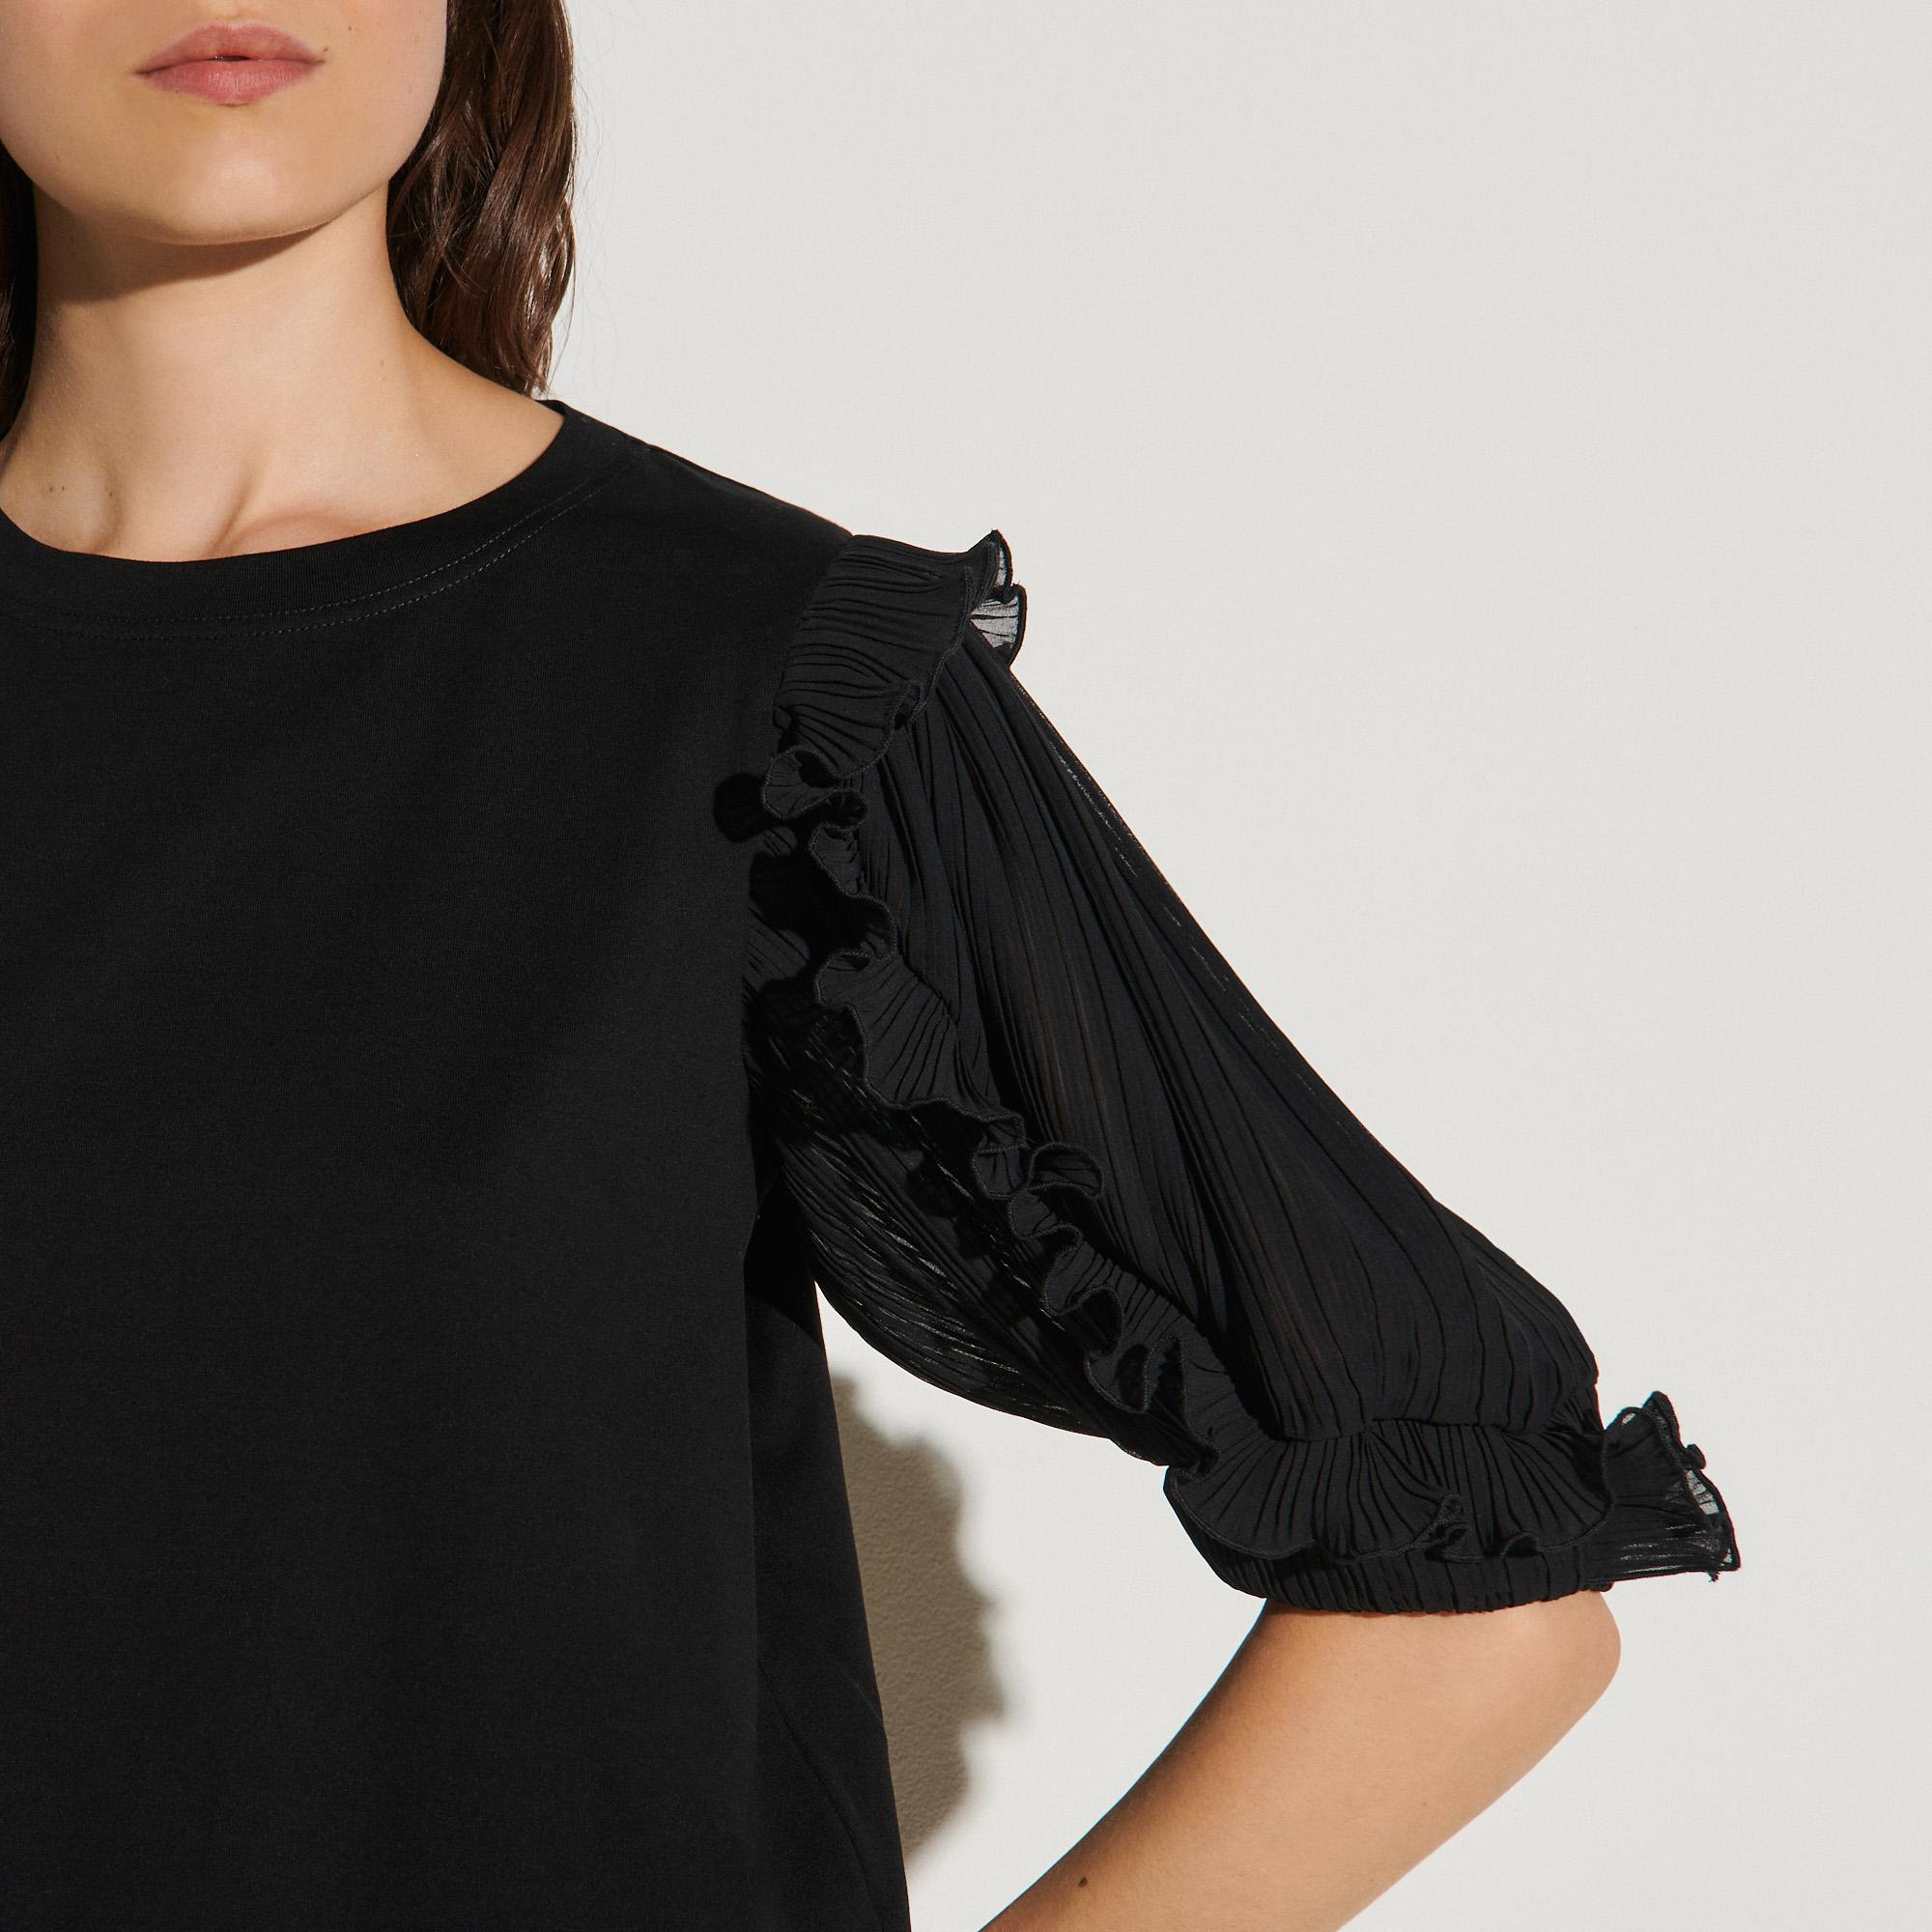 T-shirt with intricate sleeves 4